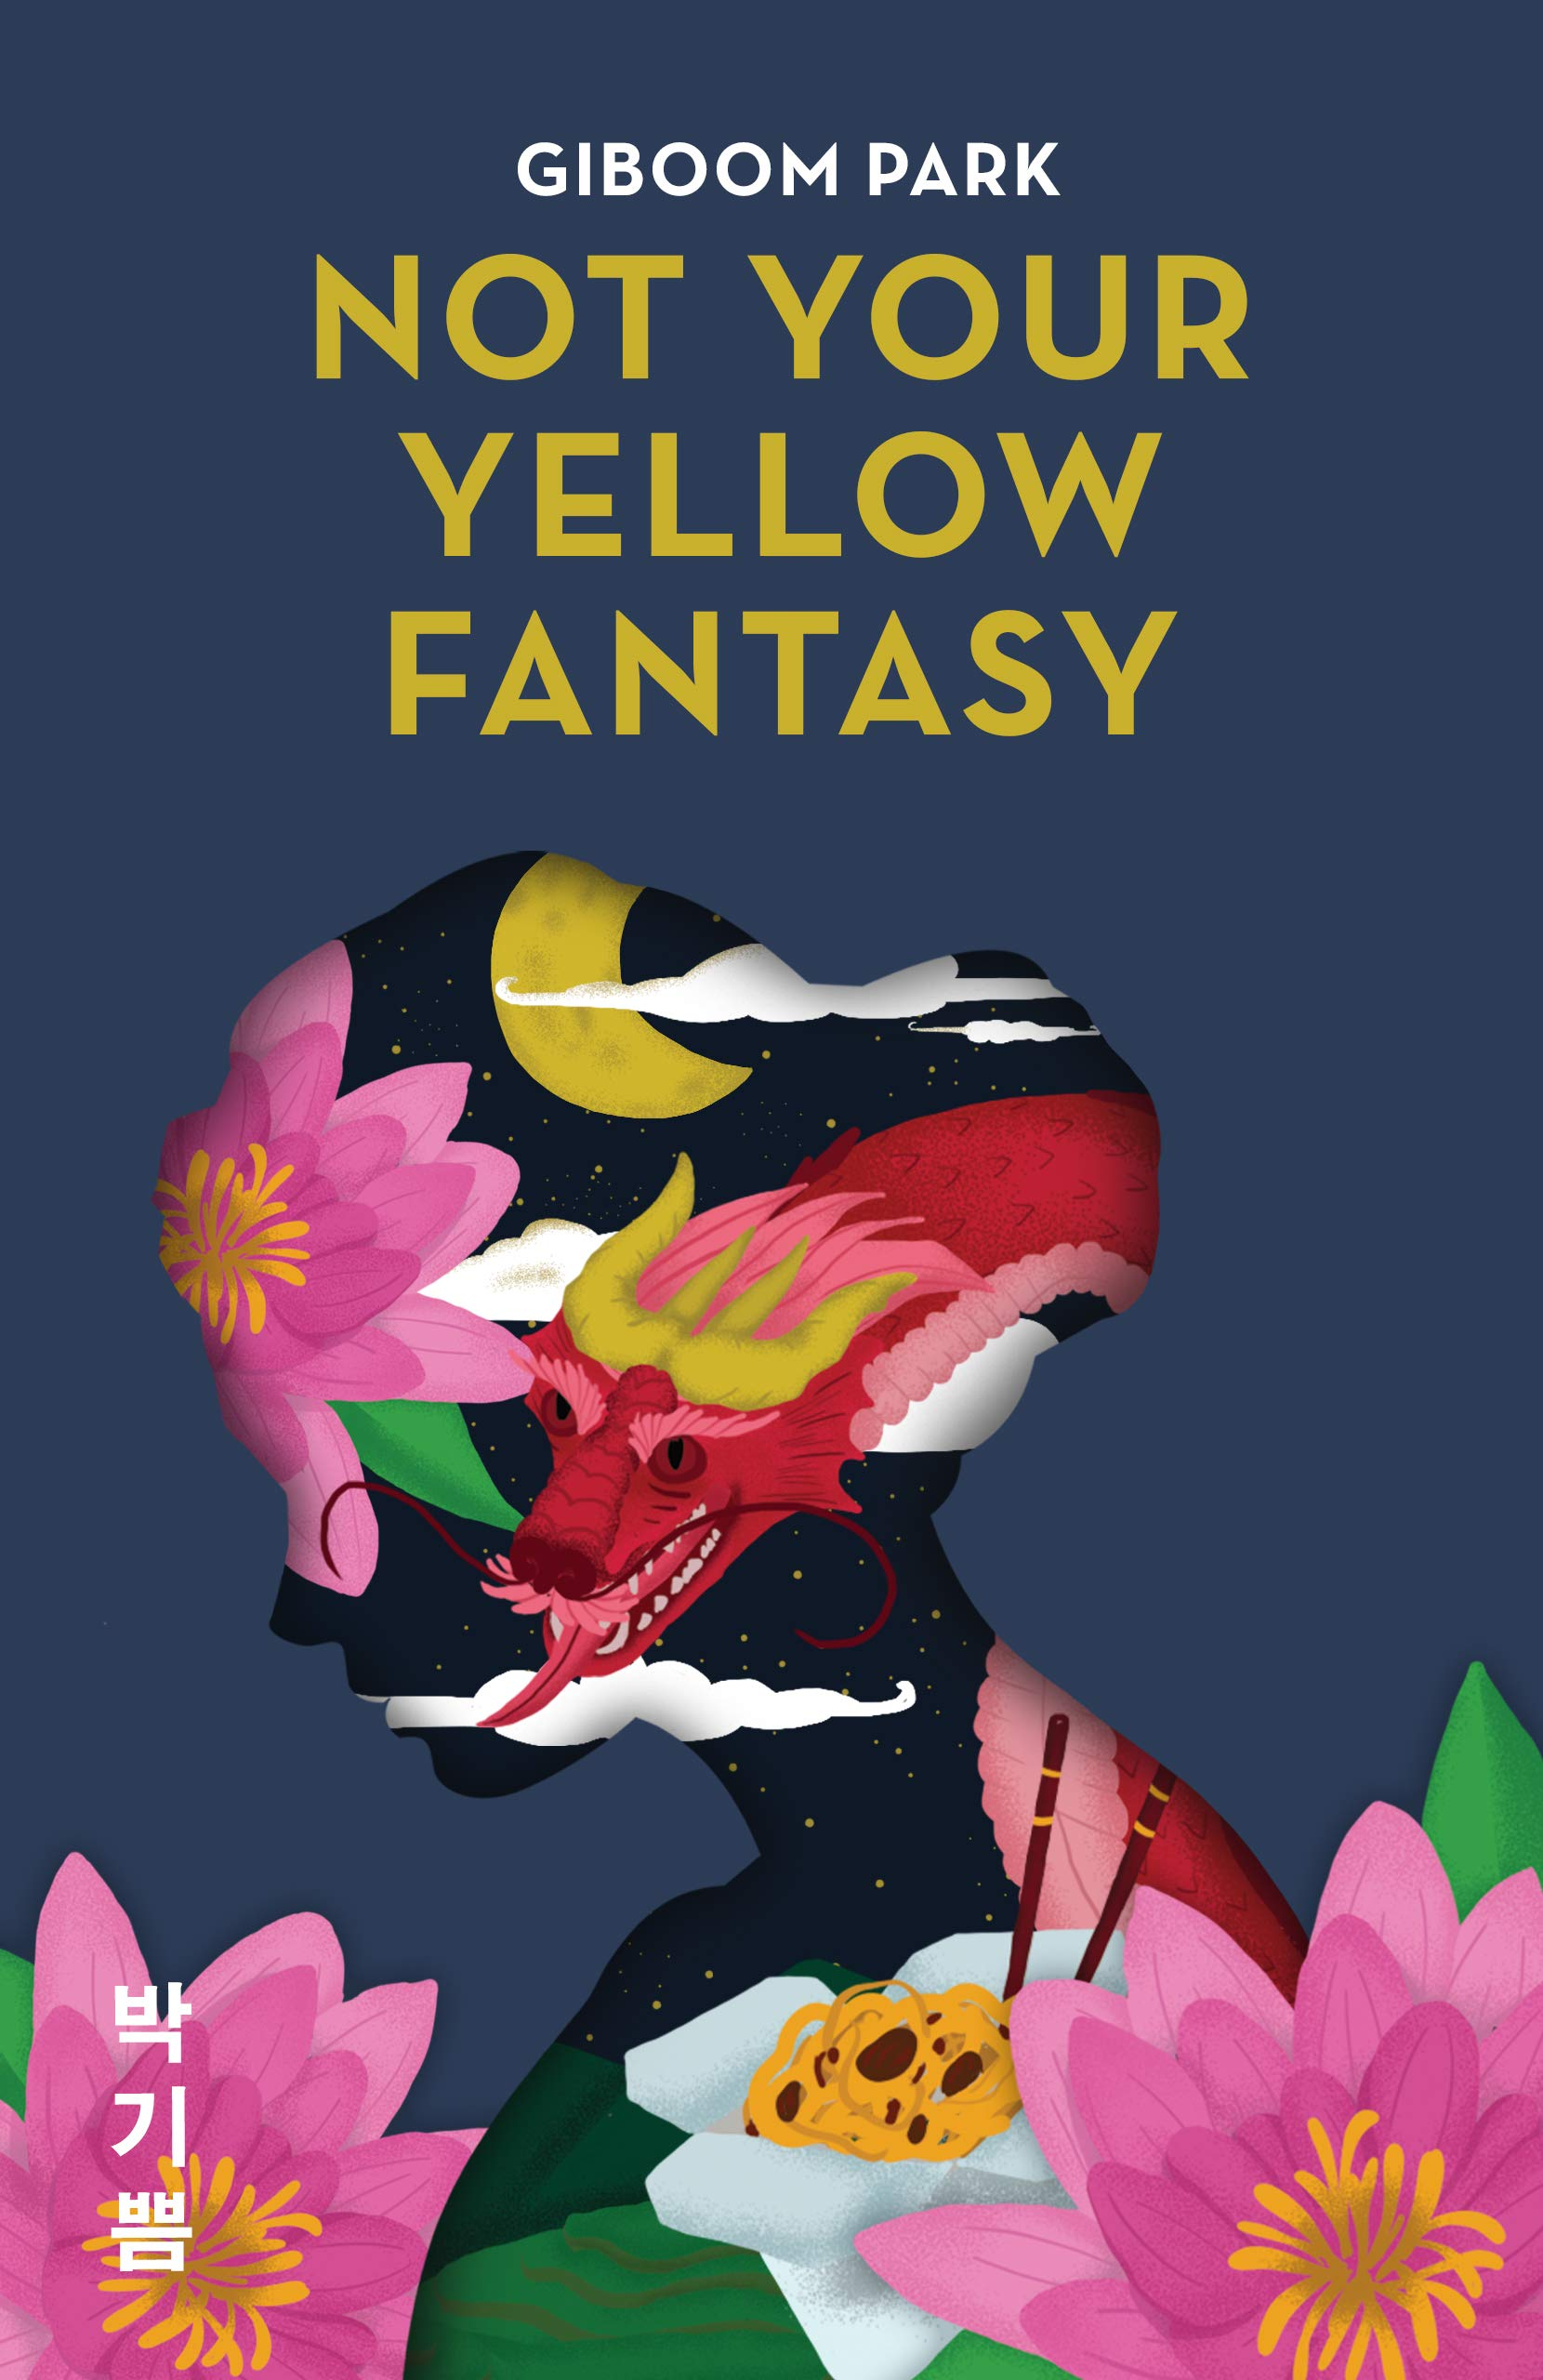 Not Your Yellow Fantasy: Deconstructing the Legacy of Asian Fetishization